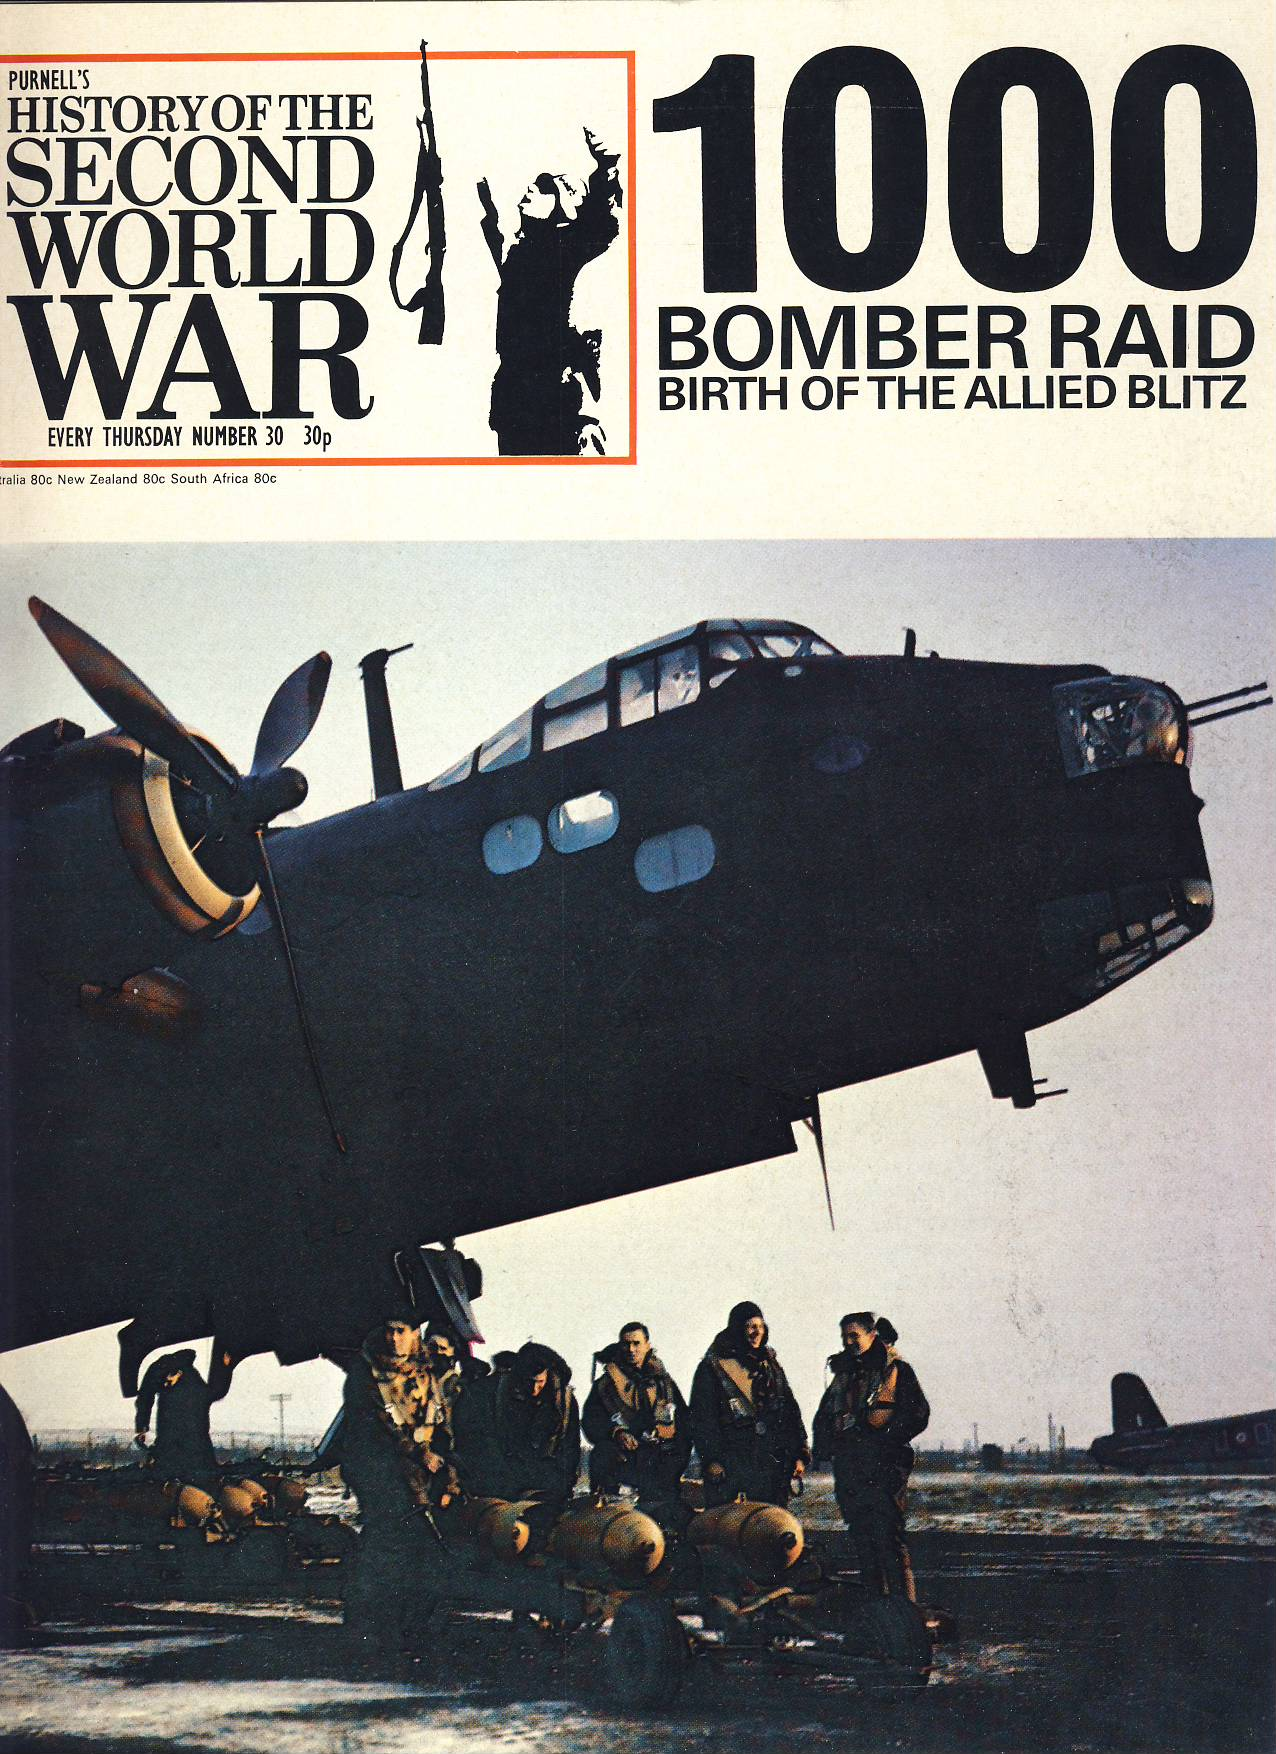 History of the Second World War Magazine #30 1000 Bomber Raid Birth of the Allied Blitz A vintage Purnell's weekly magazine in good read condition. Please see larger photo and full description for details.